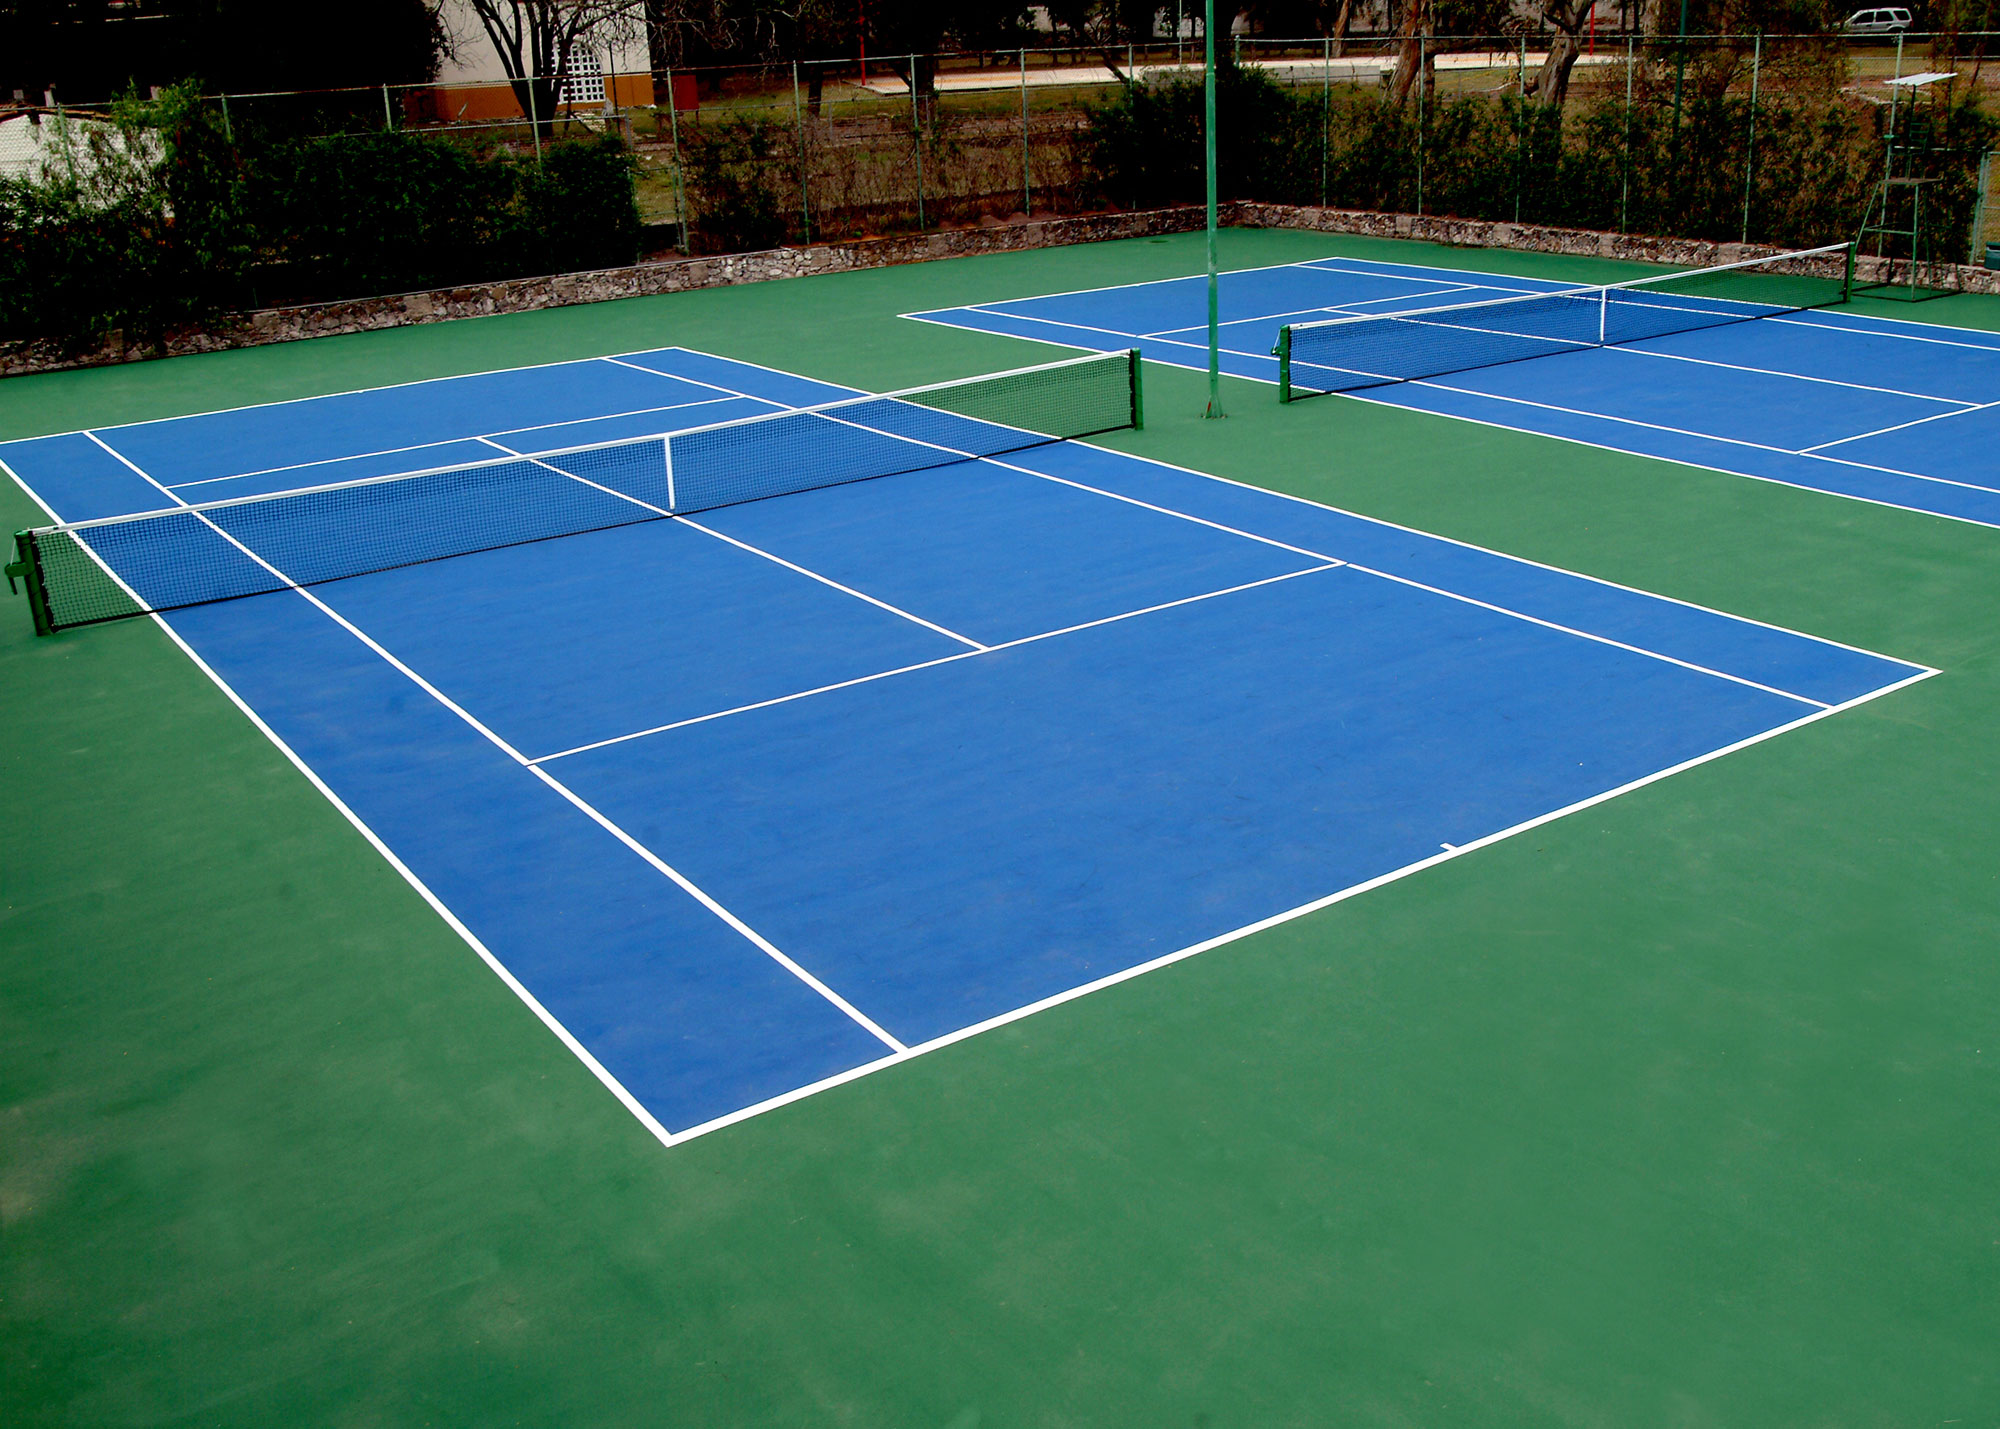 Tennis courts at Hotel Hacienda Jurica by Brisas Queretaro